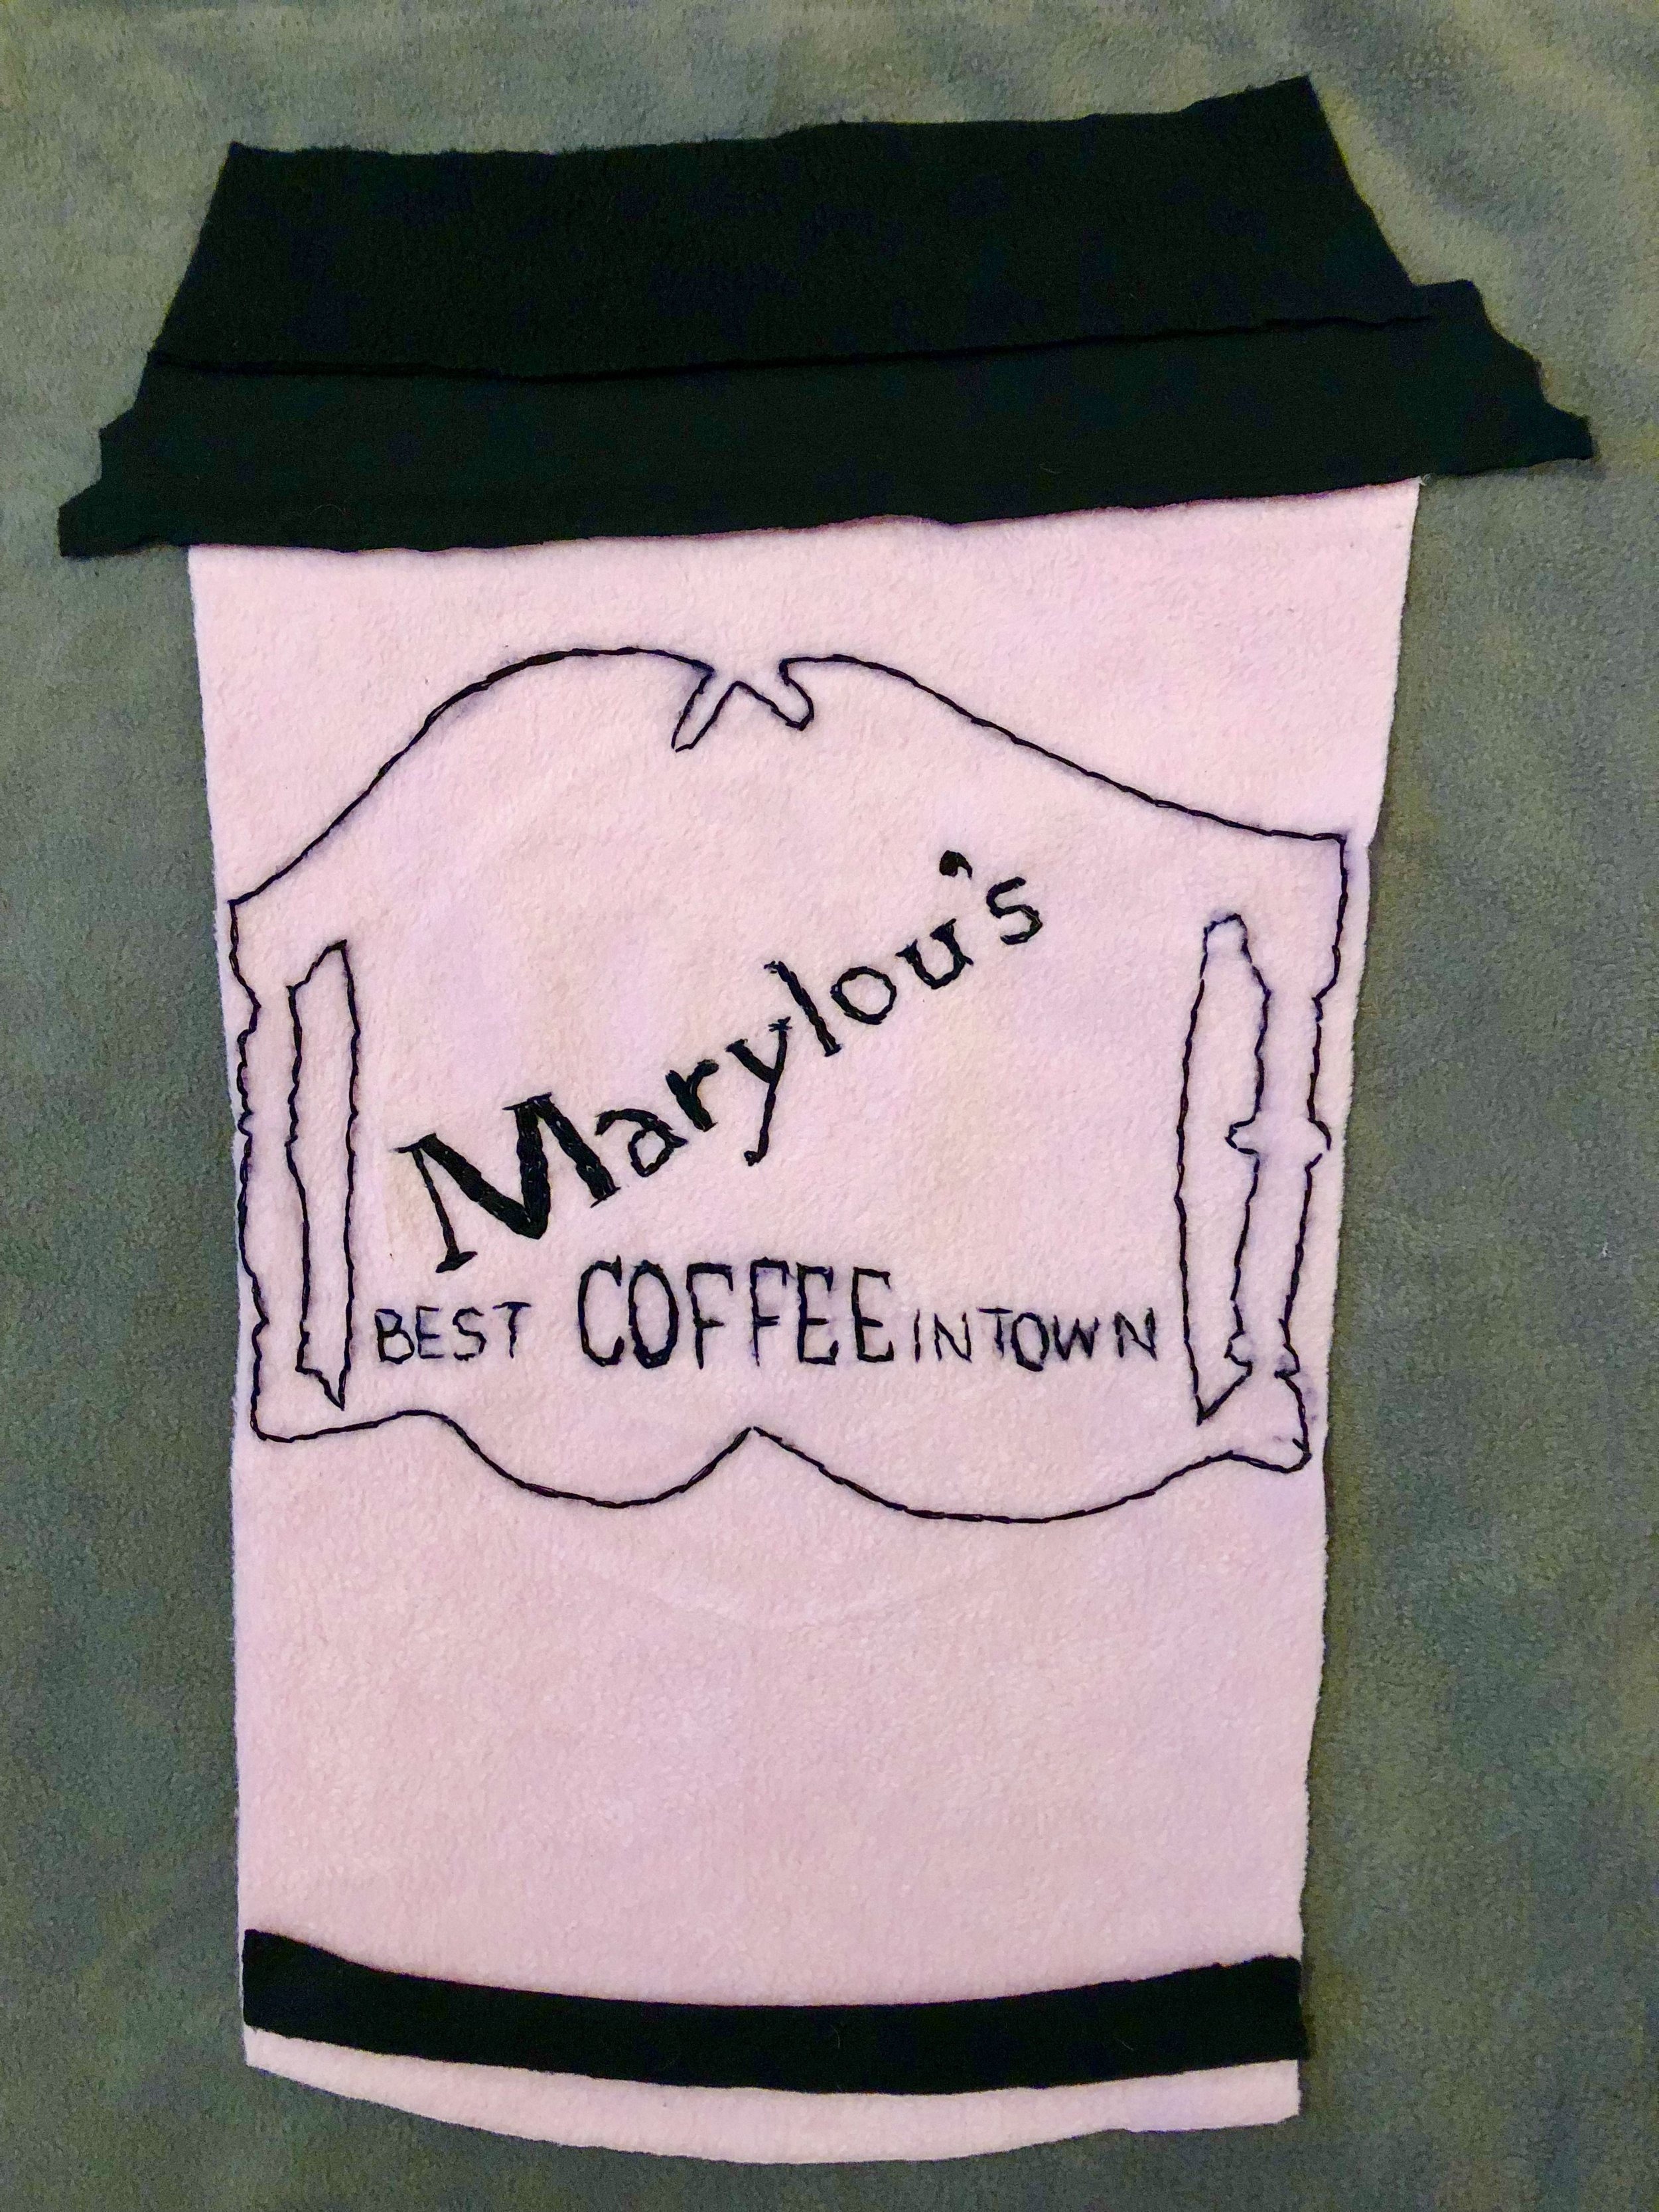 "BEST COFFEE IN TOWN-EMBROIDERY ON FLEECE-2018-18"" X 24"" $1200"